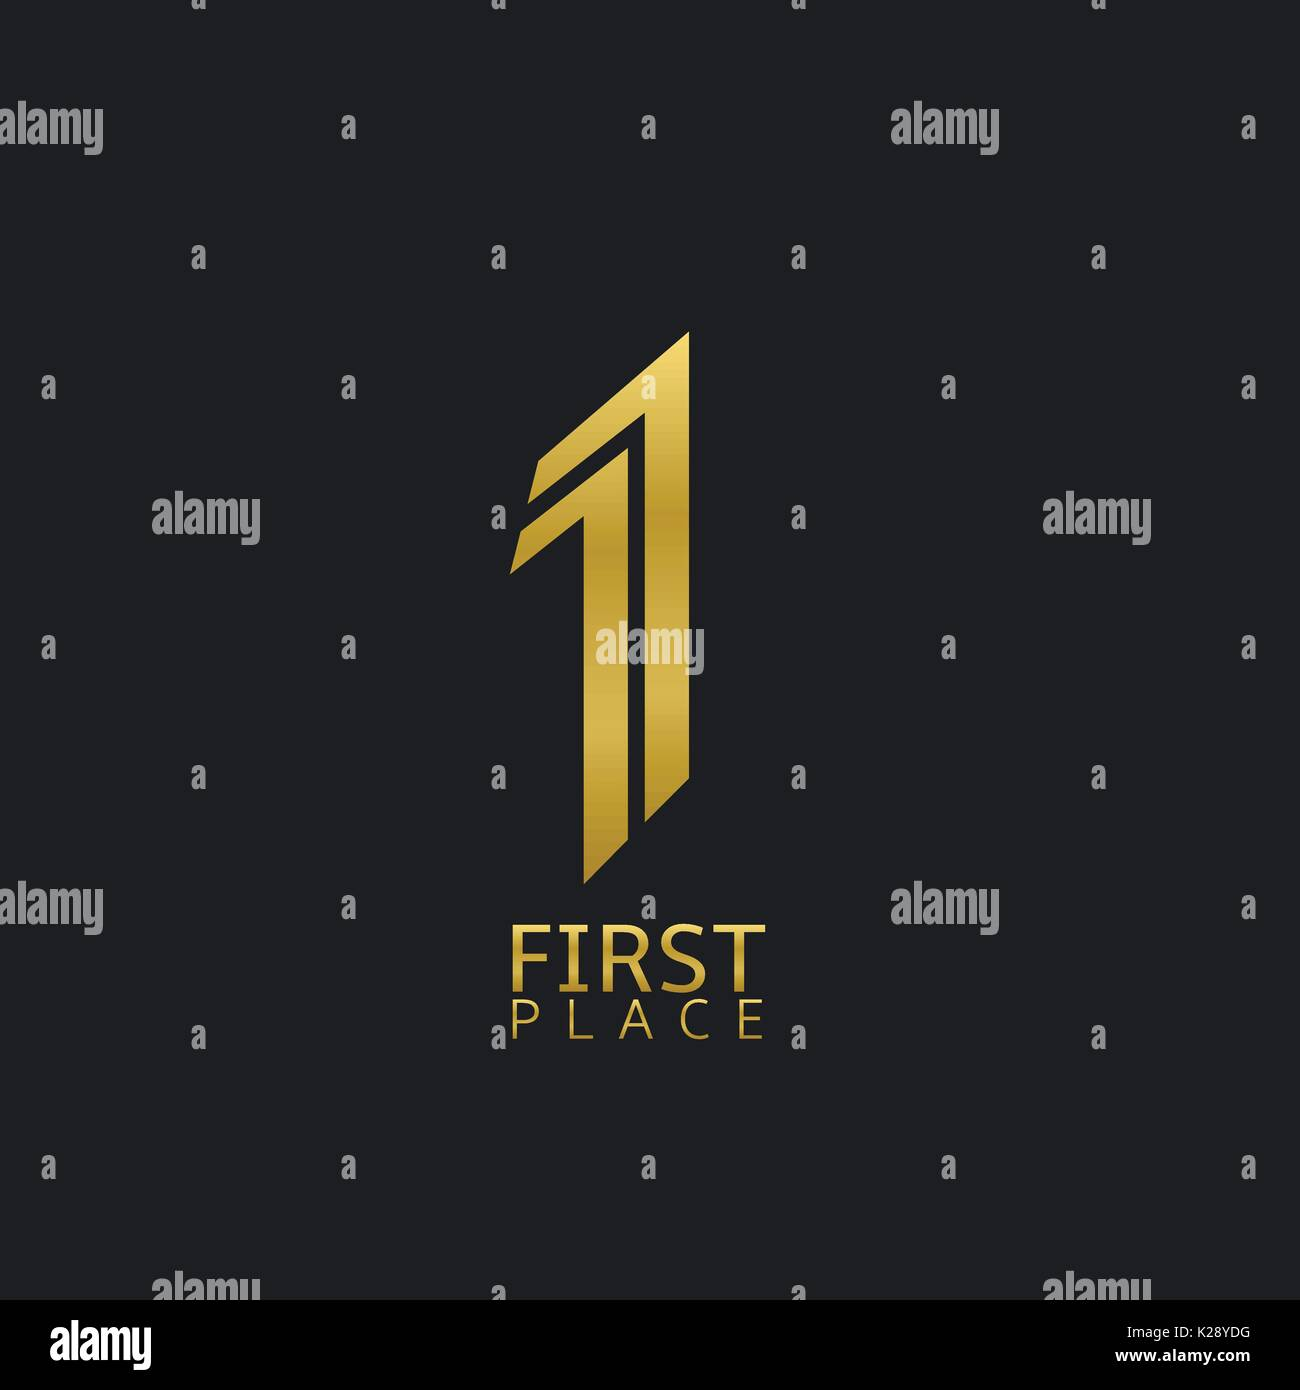 First place sign - Stock Vector